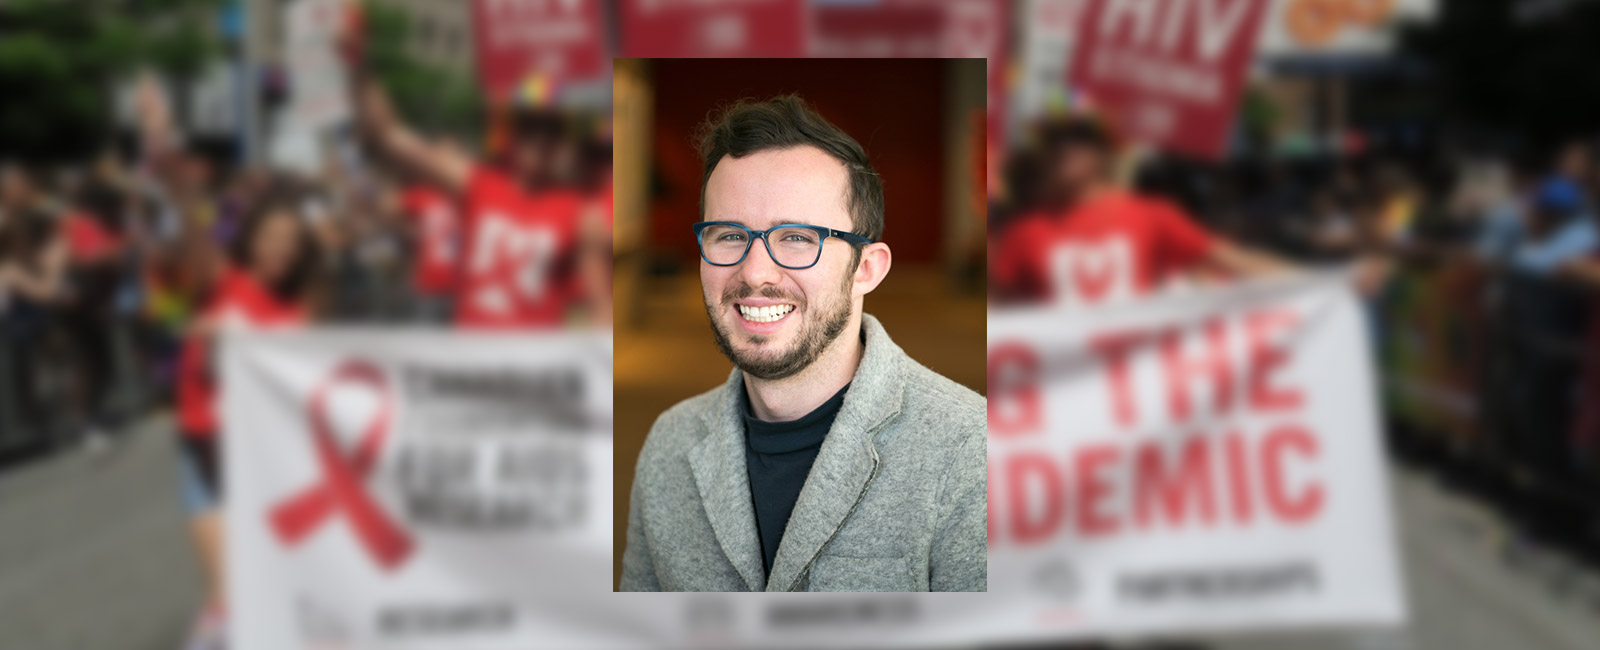 CANFAR welcomes new Director of Communications Ryan Joyce